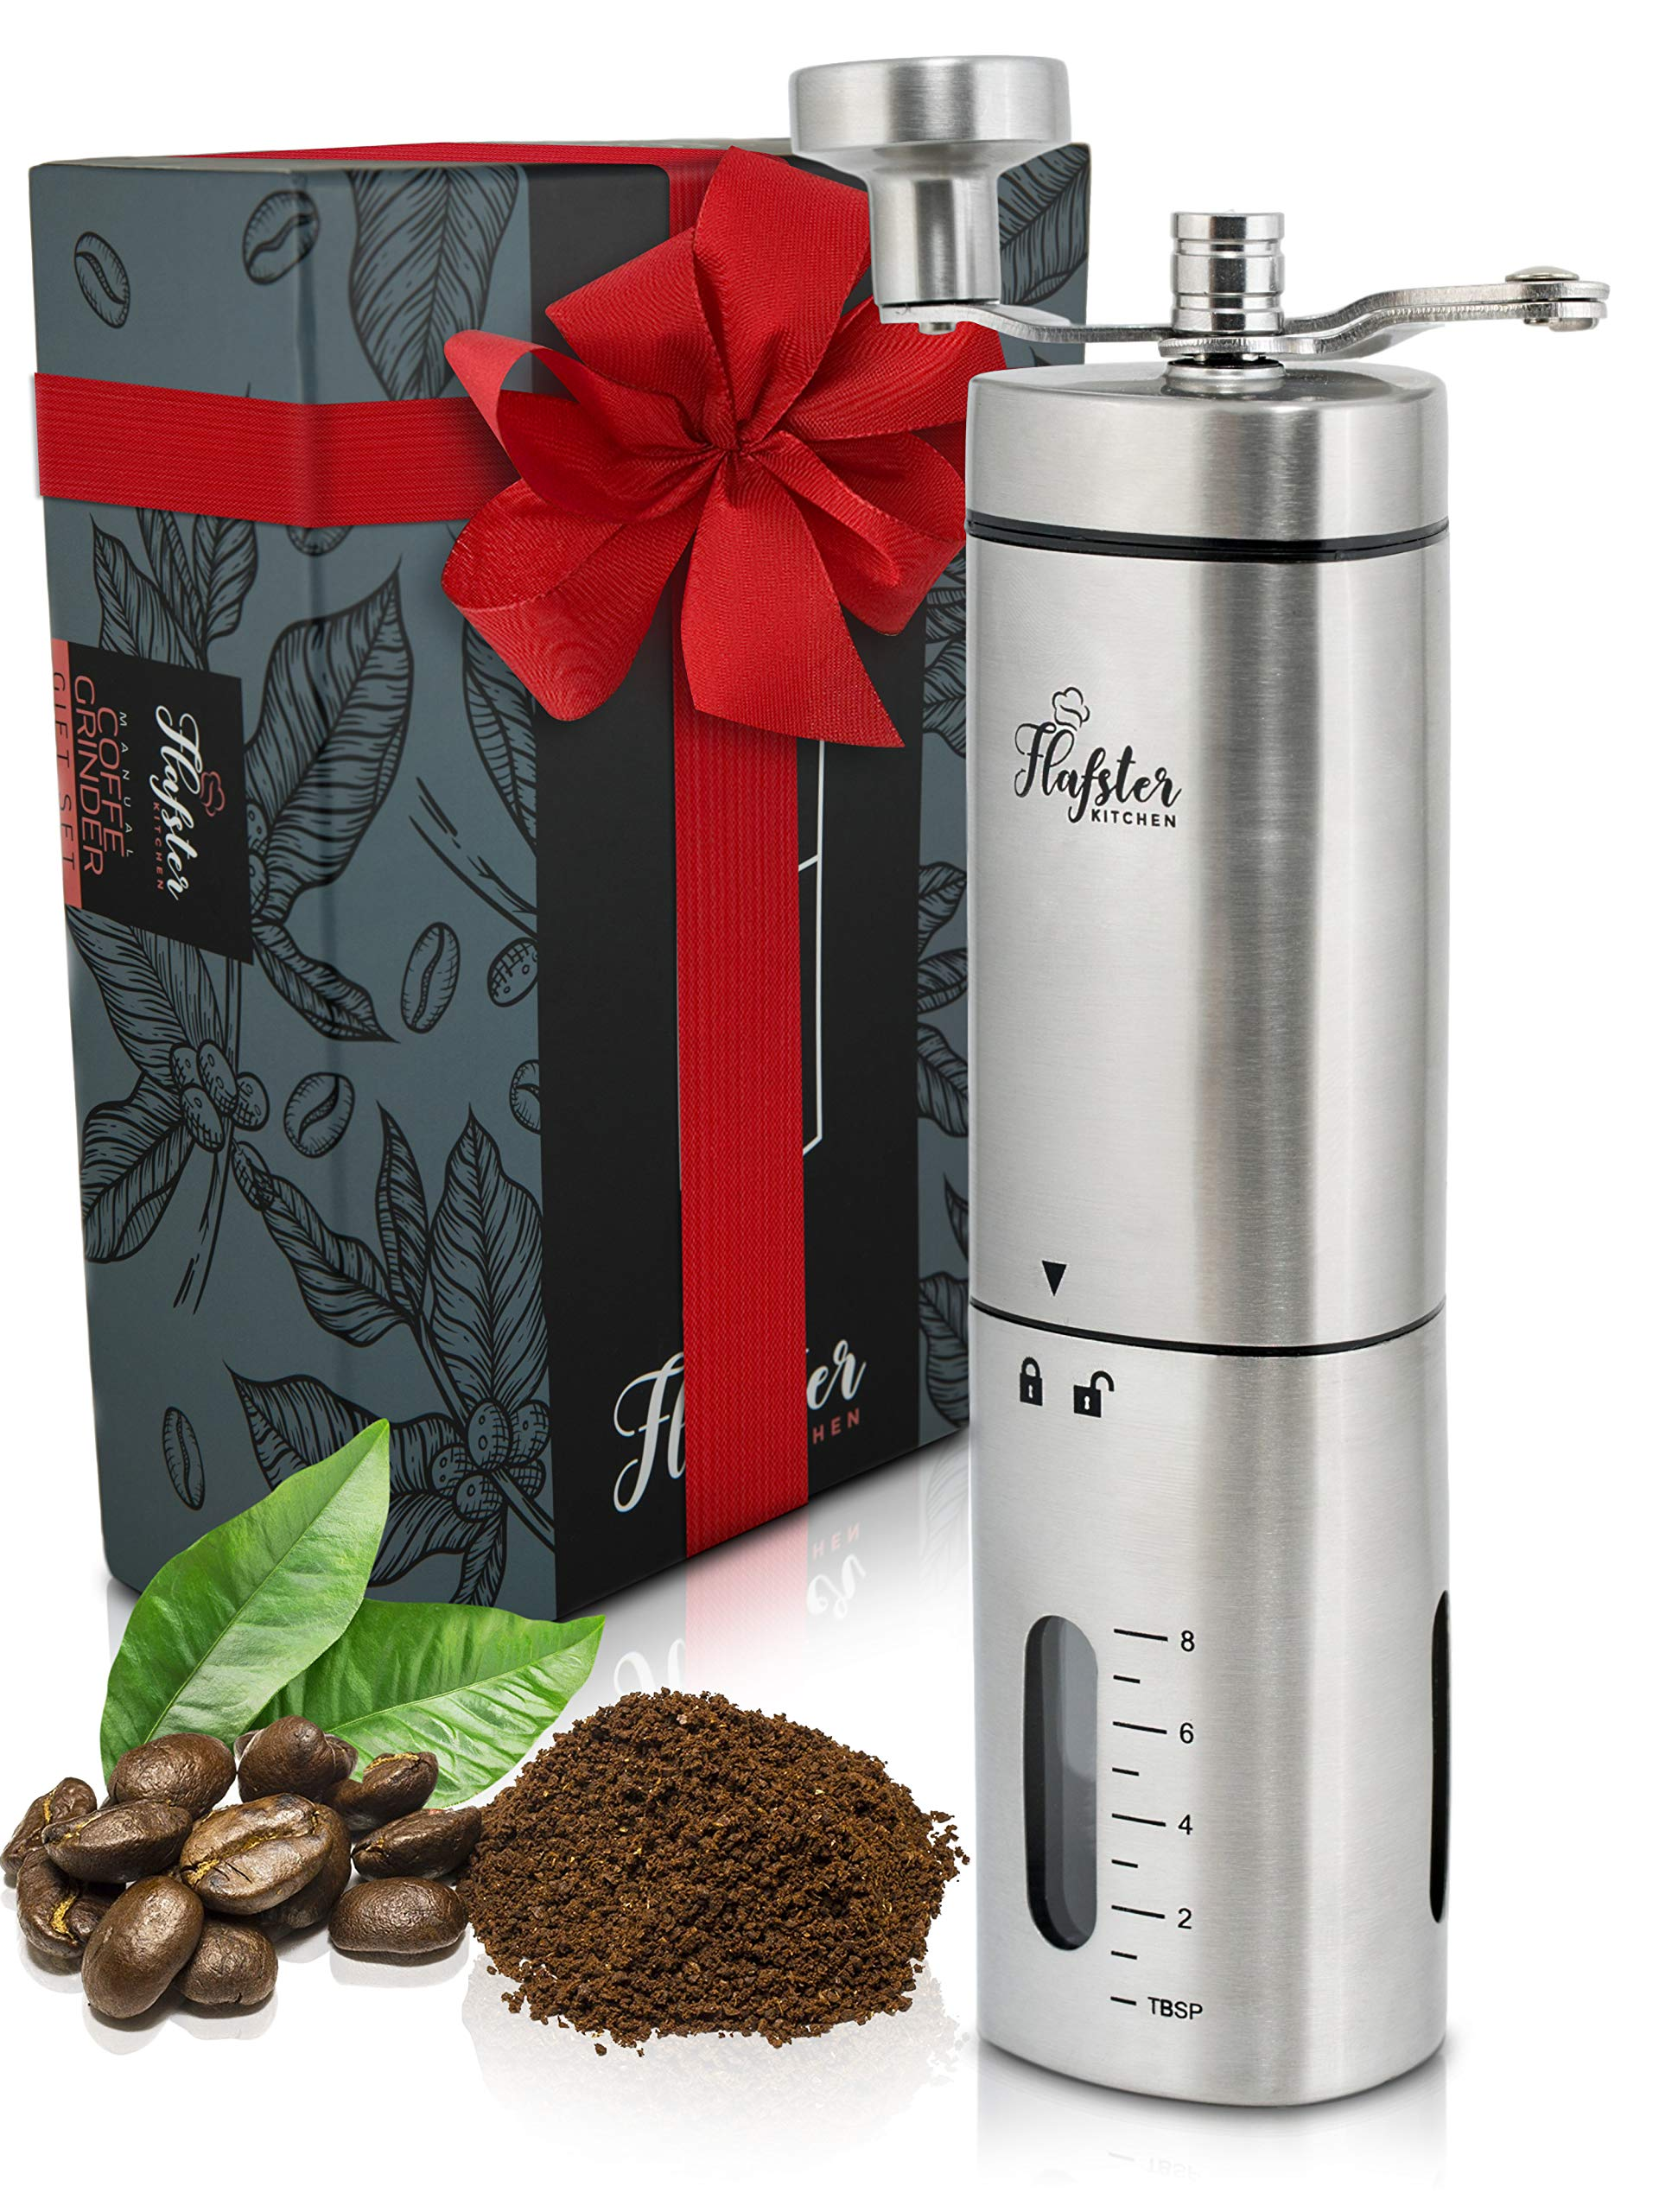 Manual Coffee Grinder - Conical Burr Coffee Grinder - Hand Coffee Grinder Gift Set - Adjustable for Fine/Coarse Grind, Perfect for French Press, Cold Brew & Pour Over - Burr Mill Coffee Grinder by FLAFSTER KITCHEN